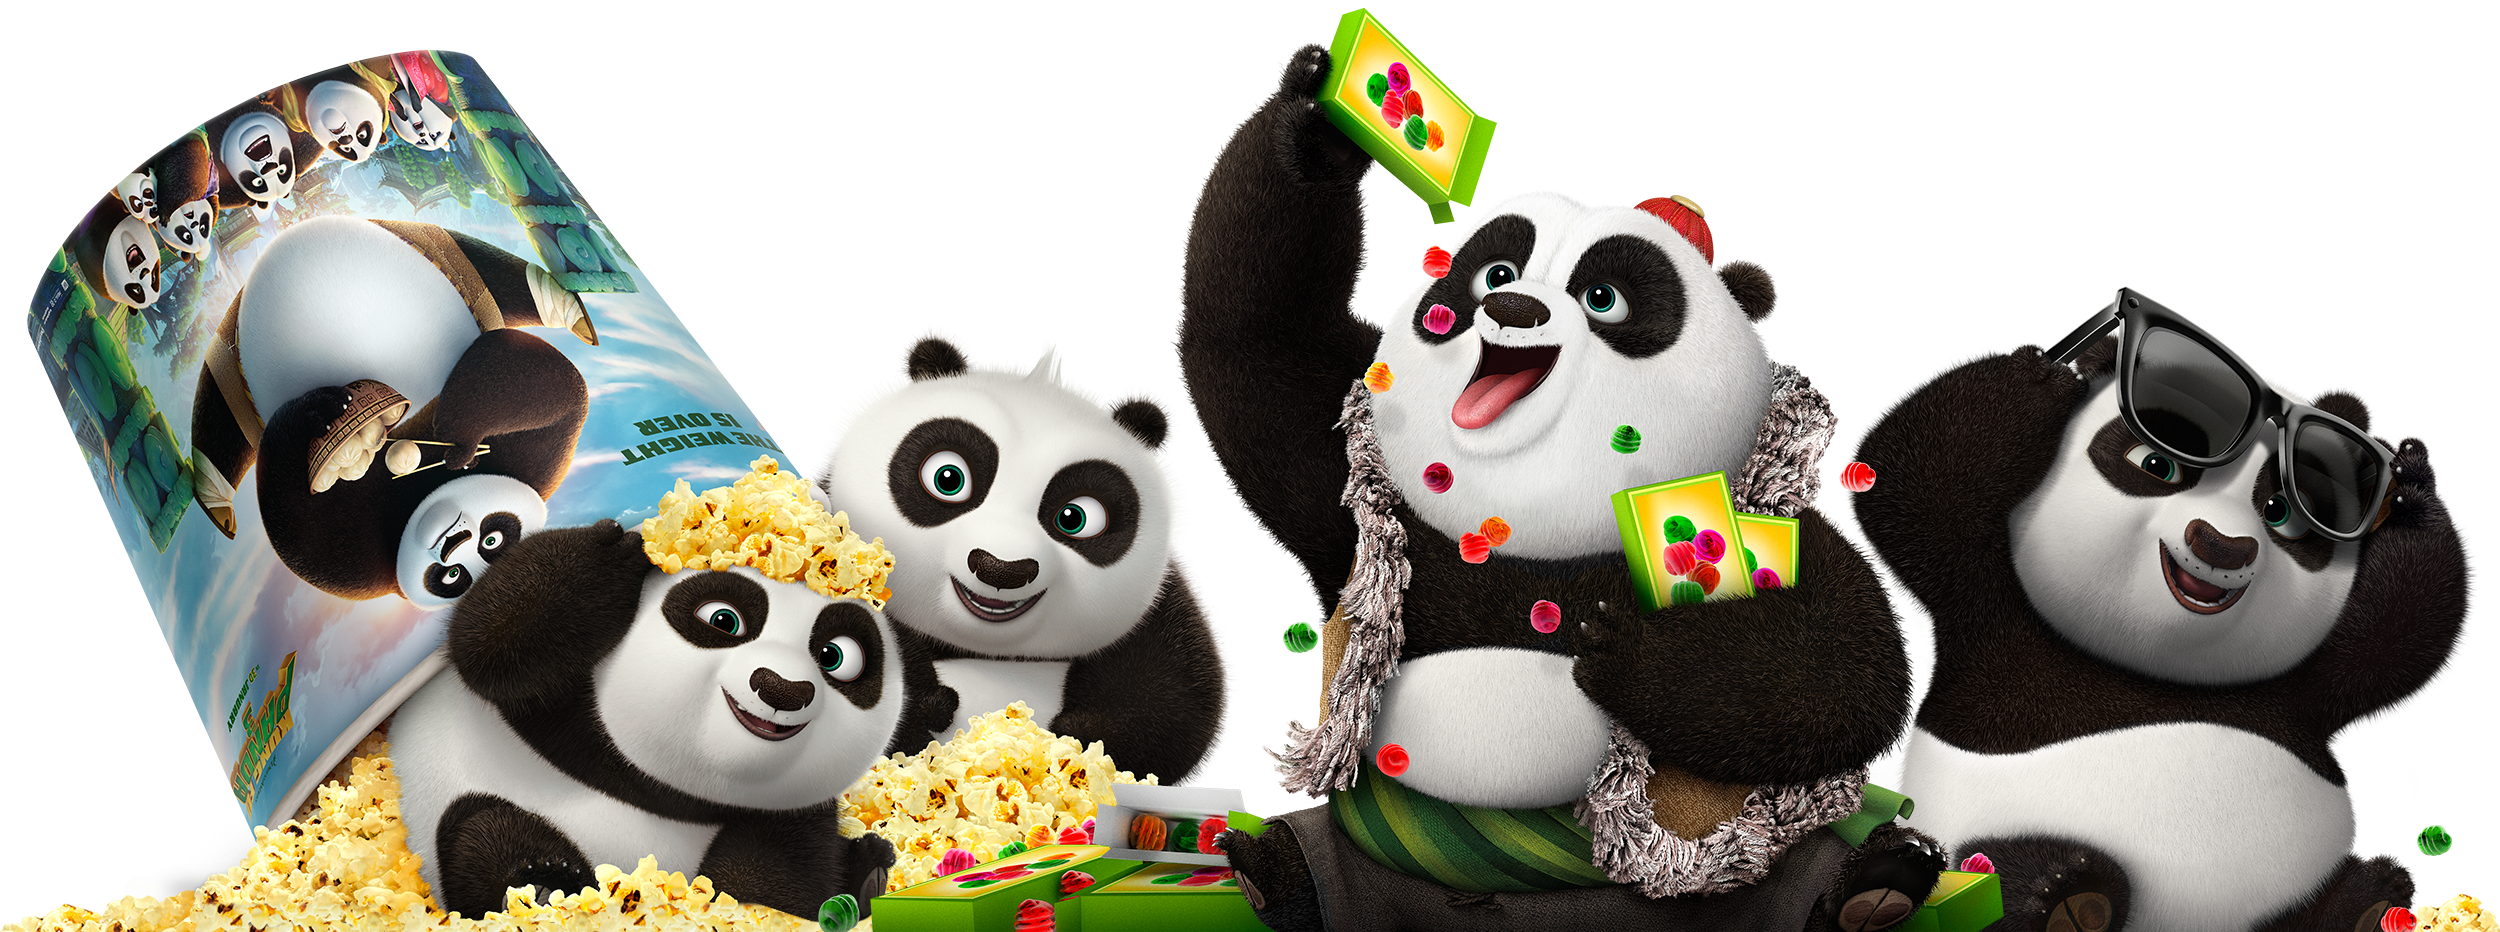 Kung Fu Panda 3 | Clings Finishing & Illustration